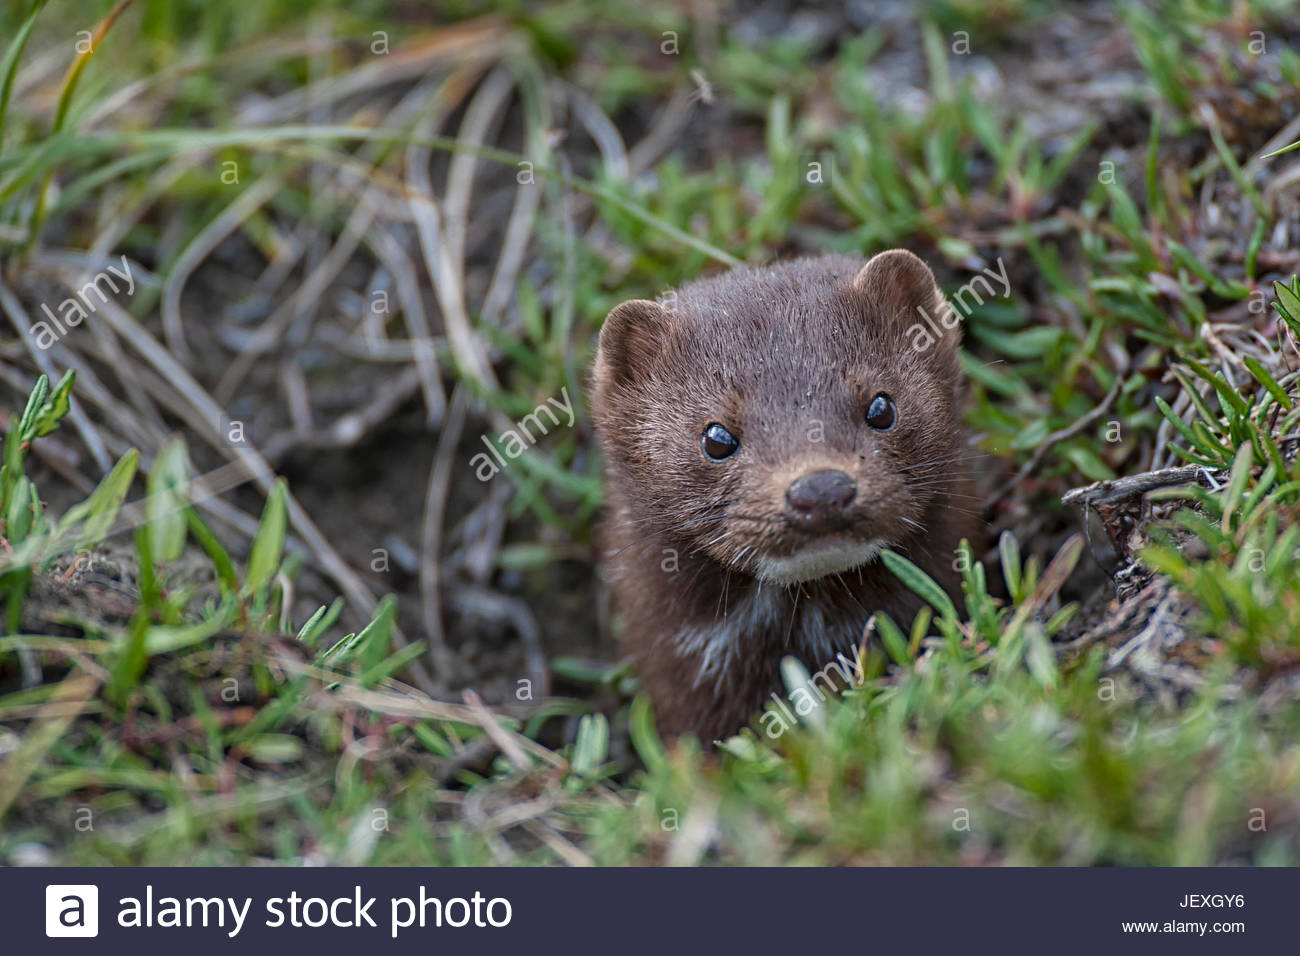 Pine martens are found in abundance throughout the watershed. This fellow chased a ground squirrel throughout our Stock Photo